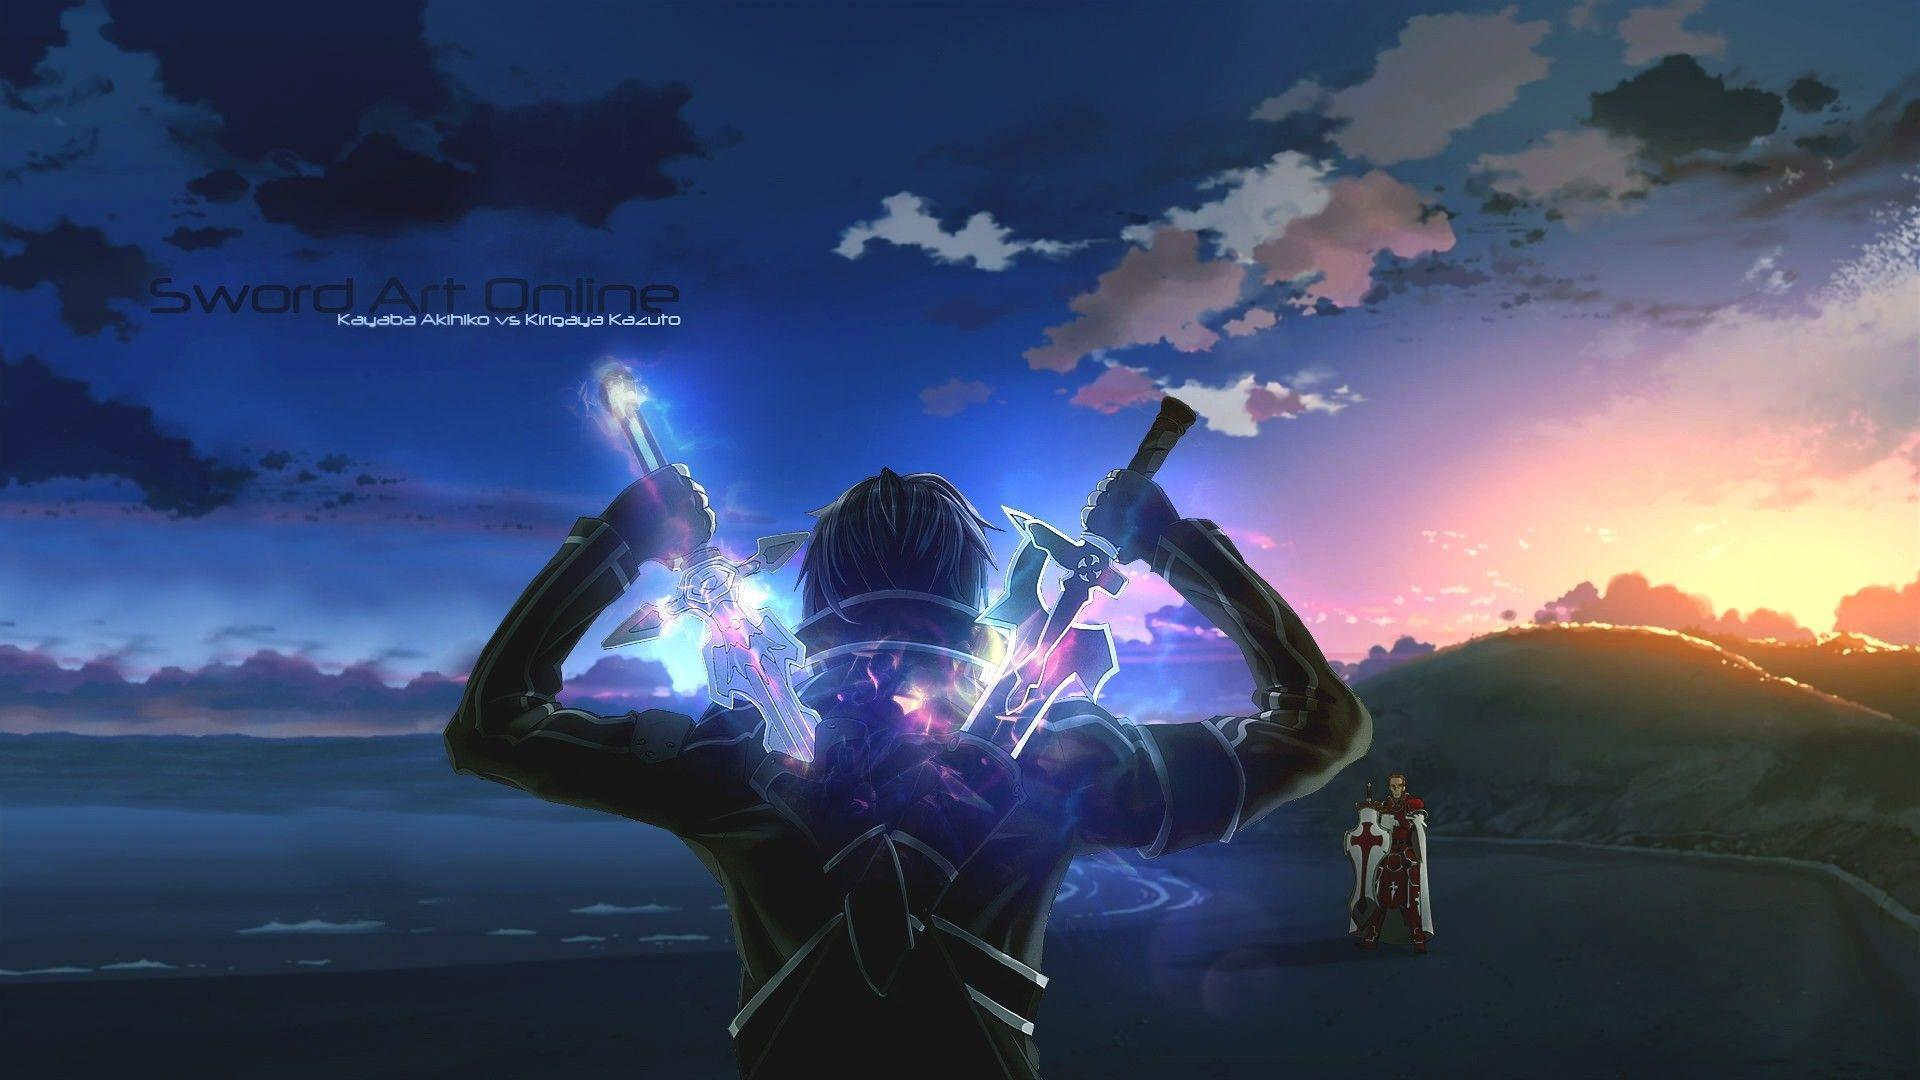 Sword Art Online HD Wallpapers And Backgrounds